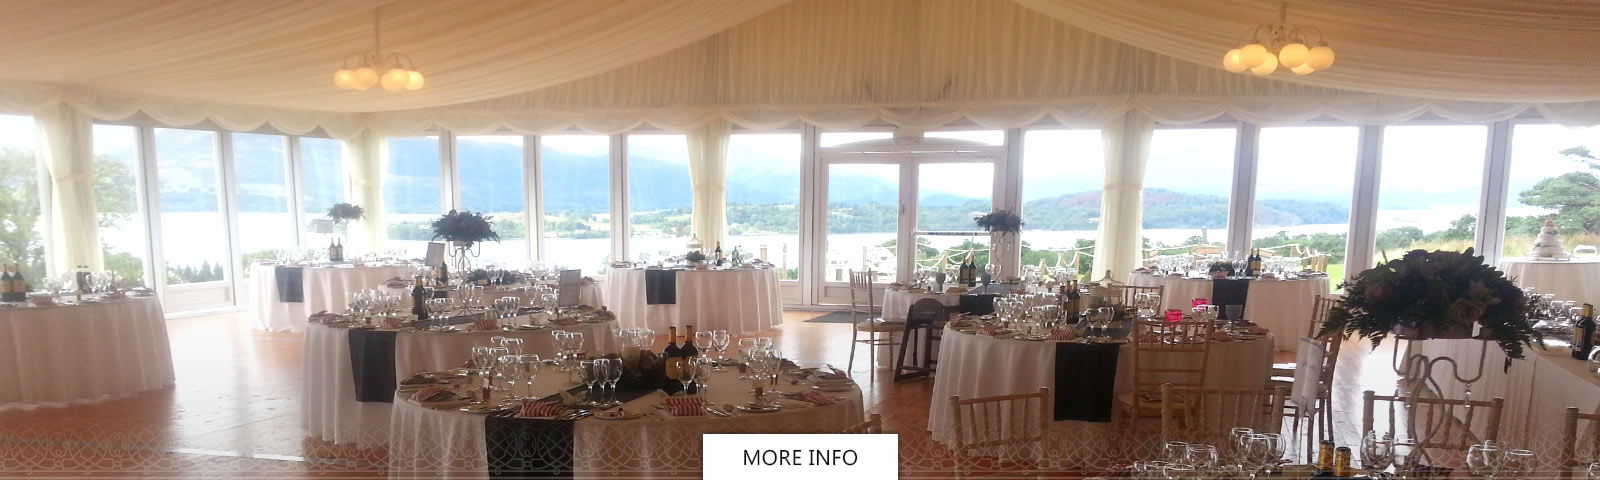 Boturich Castle dinning room dressed in white and tartan for a wedding